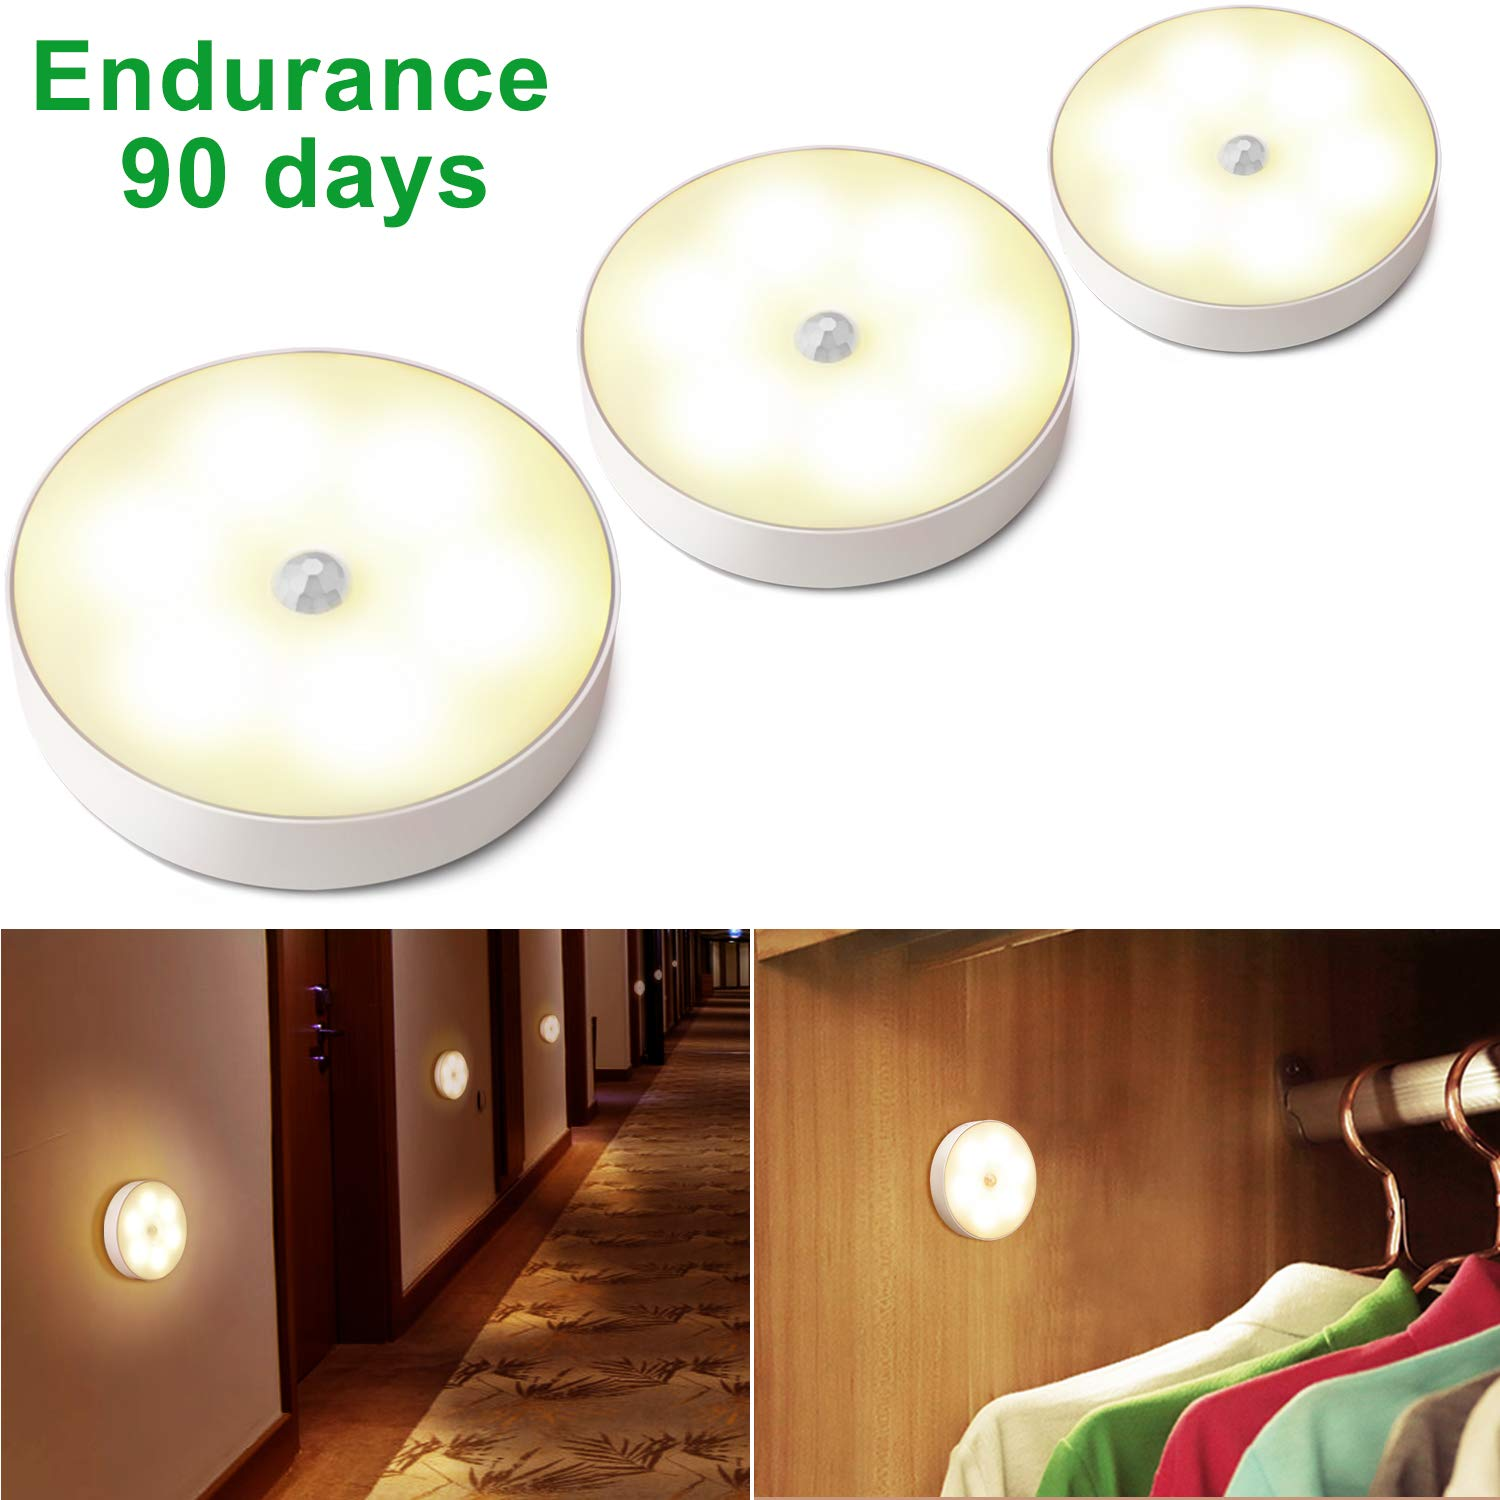 Motion Sensor Light Battery Operated LED Puck Lights Rechargeable Closet Light Cordless Wall Light Under Cabinet Lighting Stairs Lights, Hallway, Bathroom, Kitchen, Cabinet-3pack Latest Model